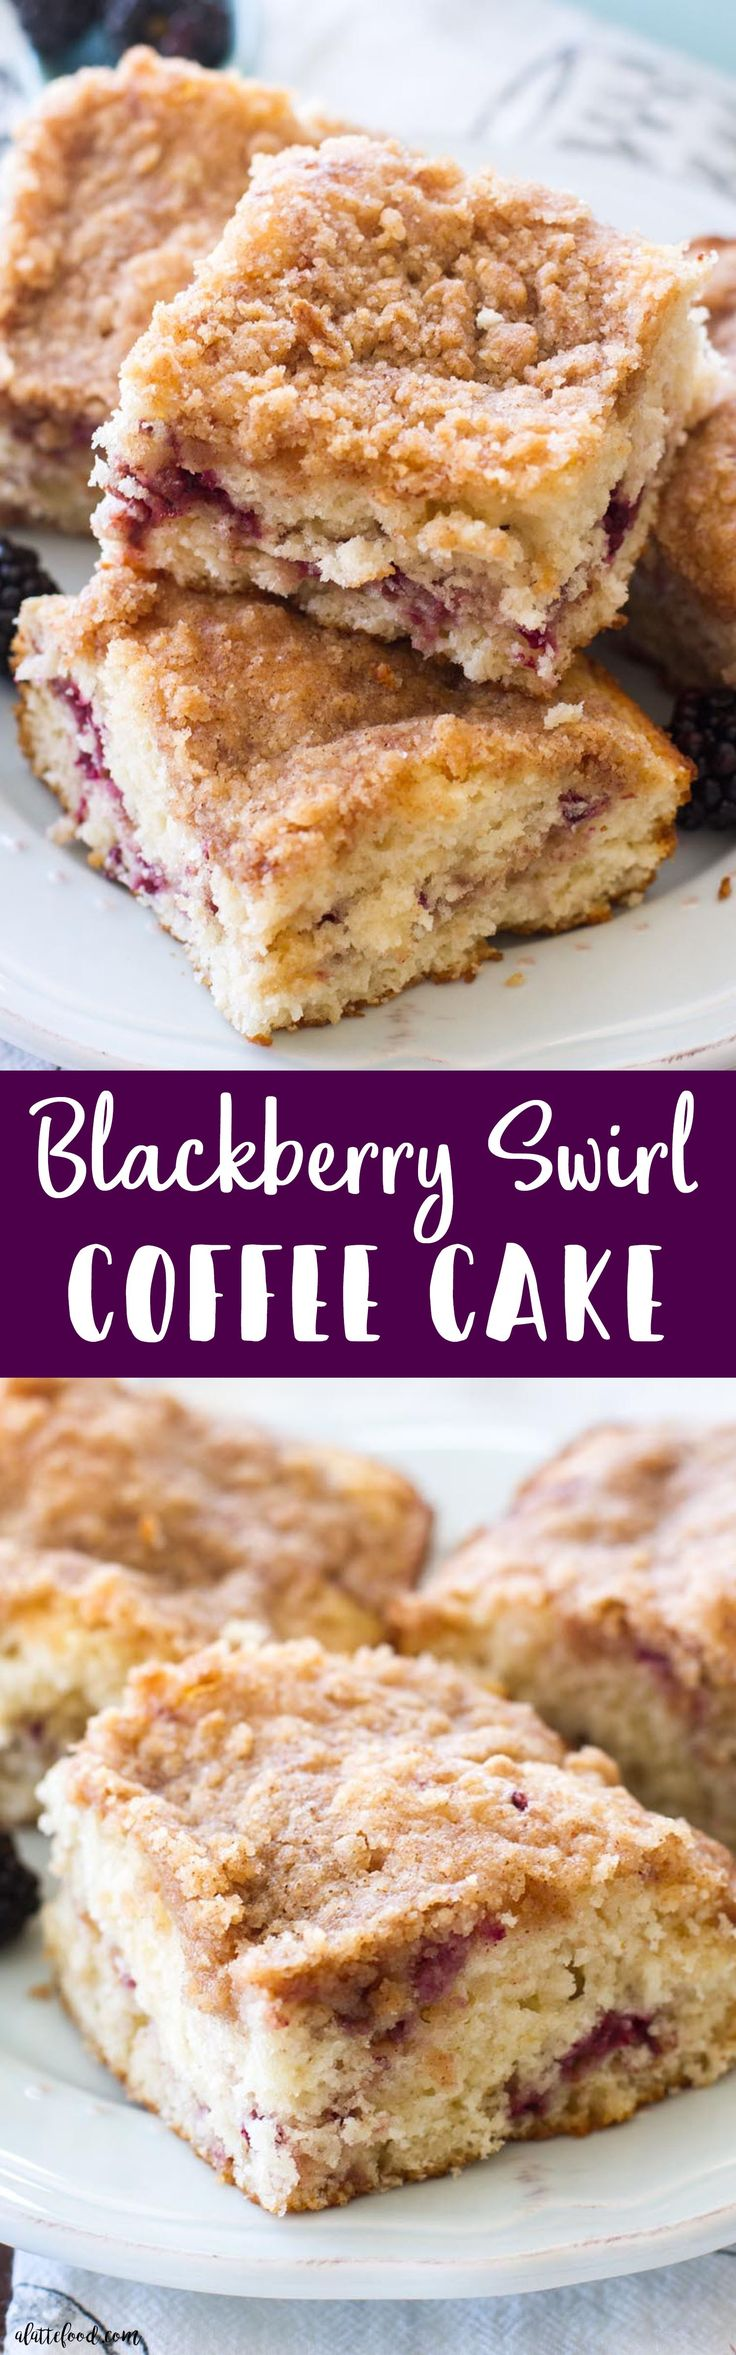 This Blackberry Coffee Cake recipe is a simple yet elegant addition to any breakfast, brunch, or afternoon coffee break! It's light, fluffy, filled with a blackberrypuree, and topped with a sweet brown sugar topping!